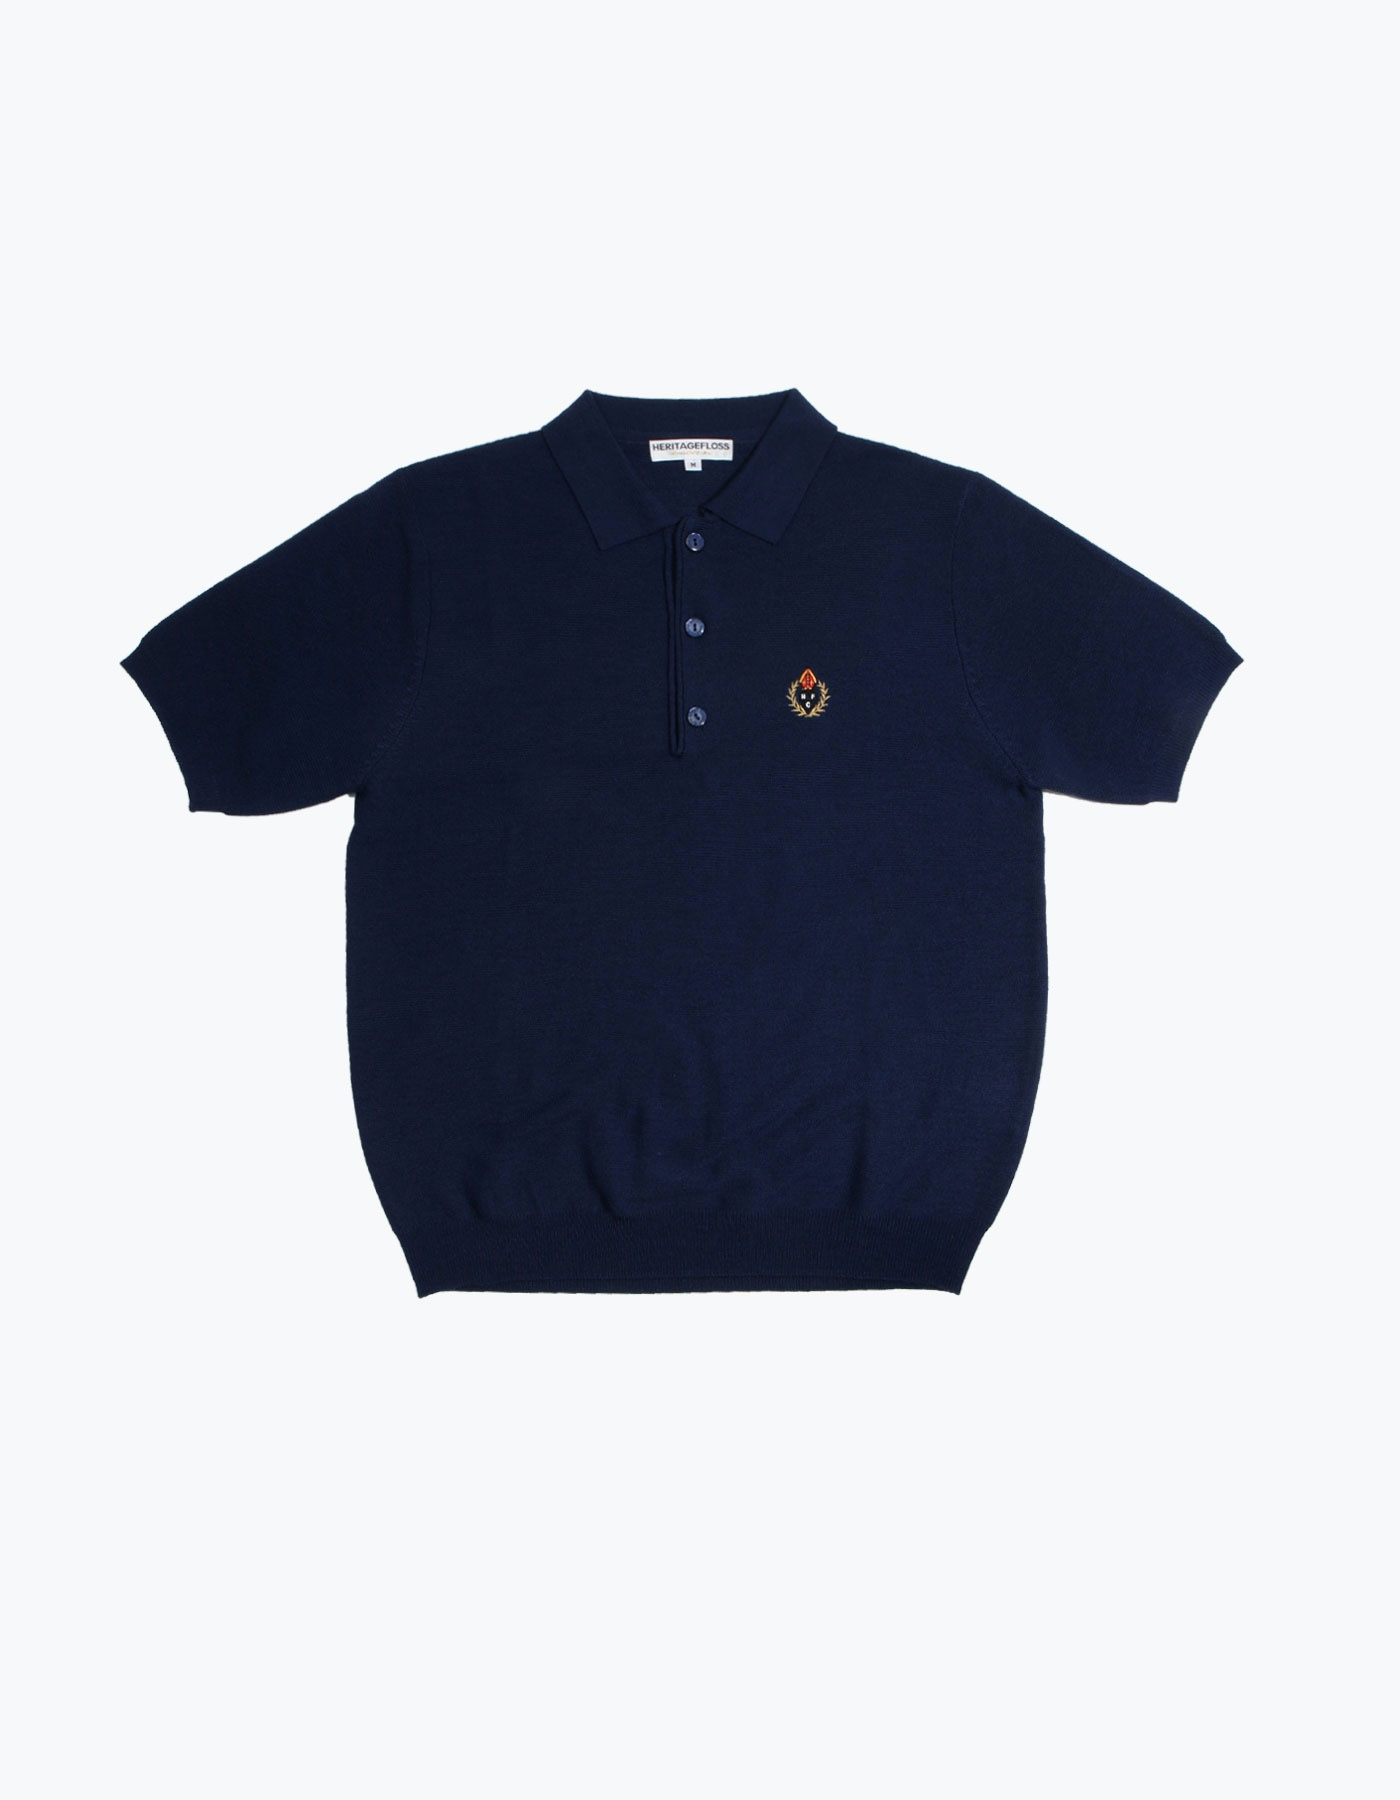 HFC CREST POLO SHIRT / NAVY